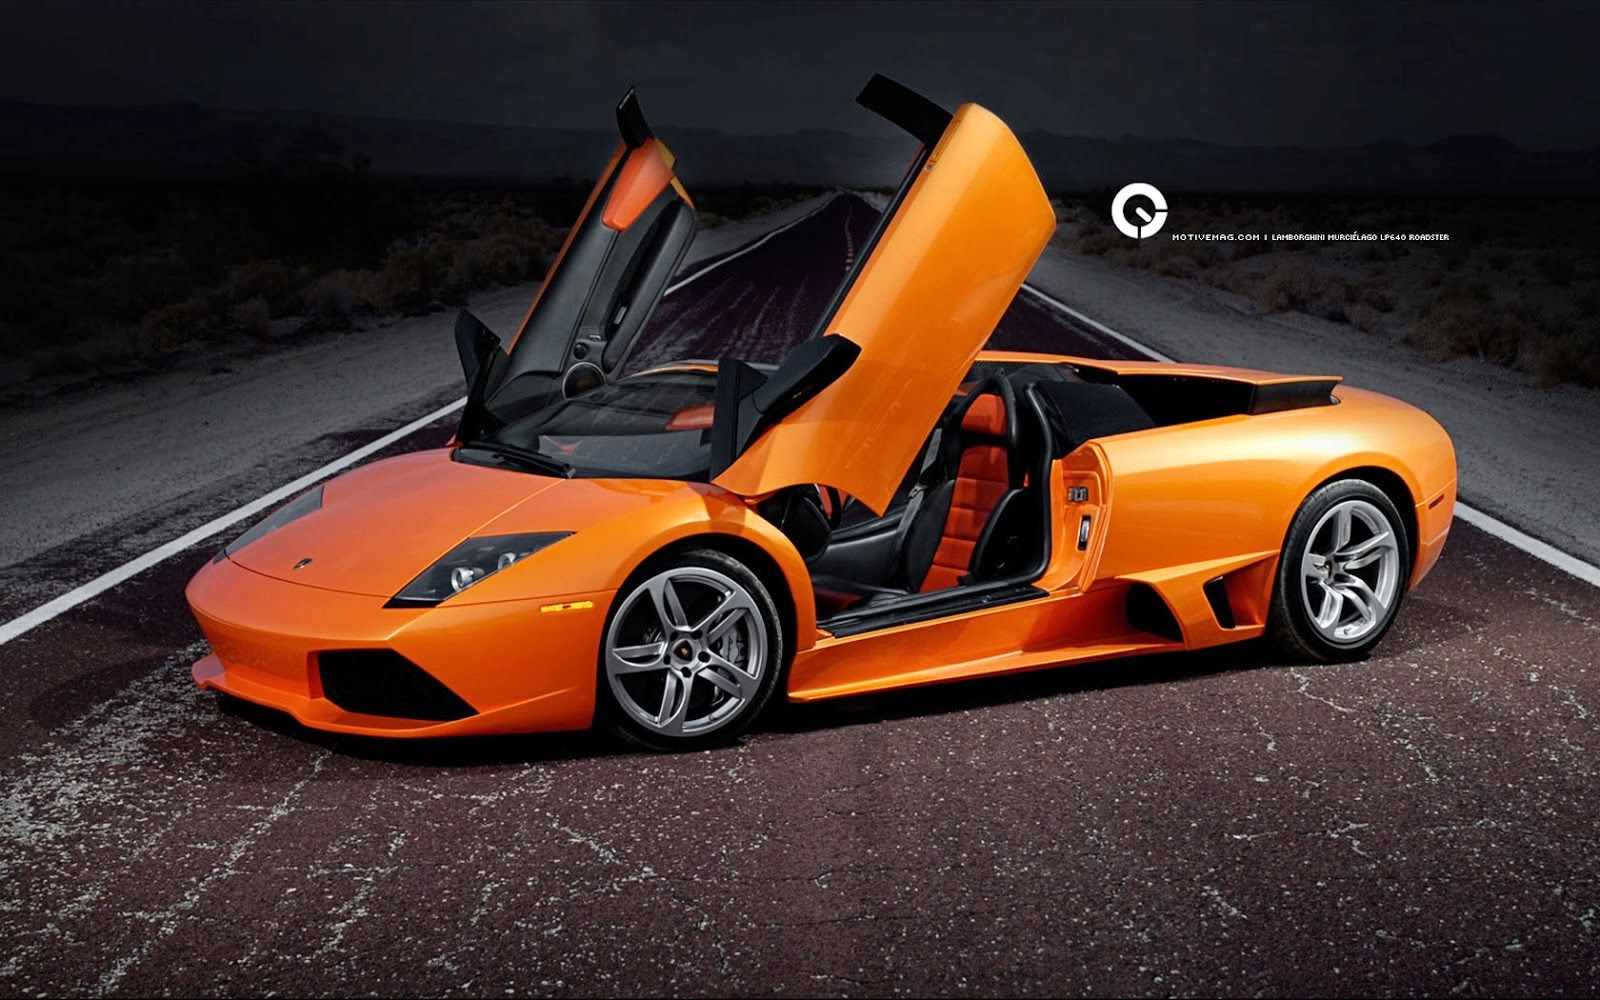 gallardo hd wallpaper 1080p lamborghini gallardo hd wallpaper 1080p 1600x1000